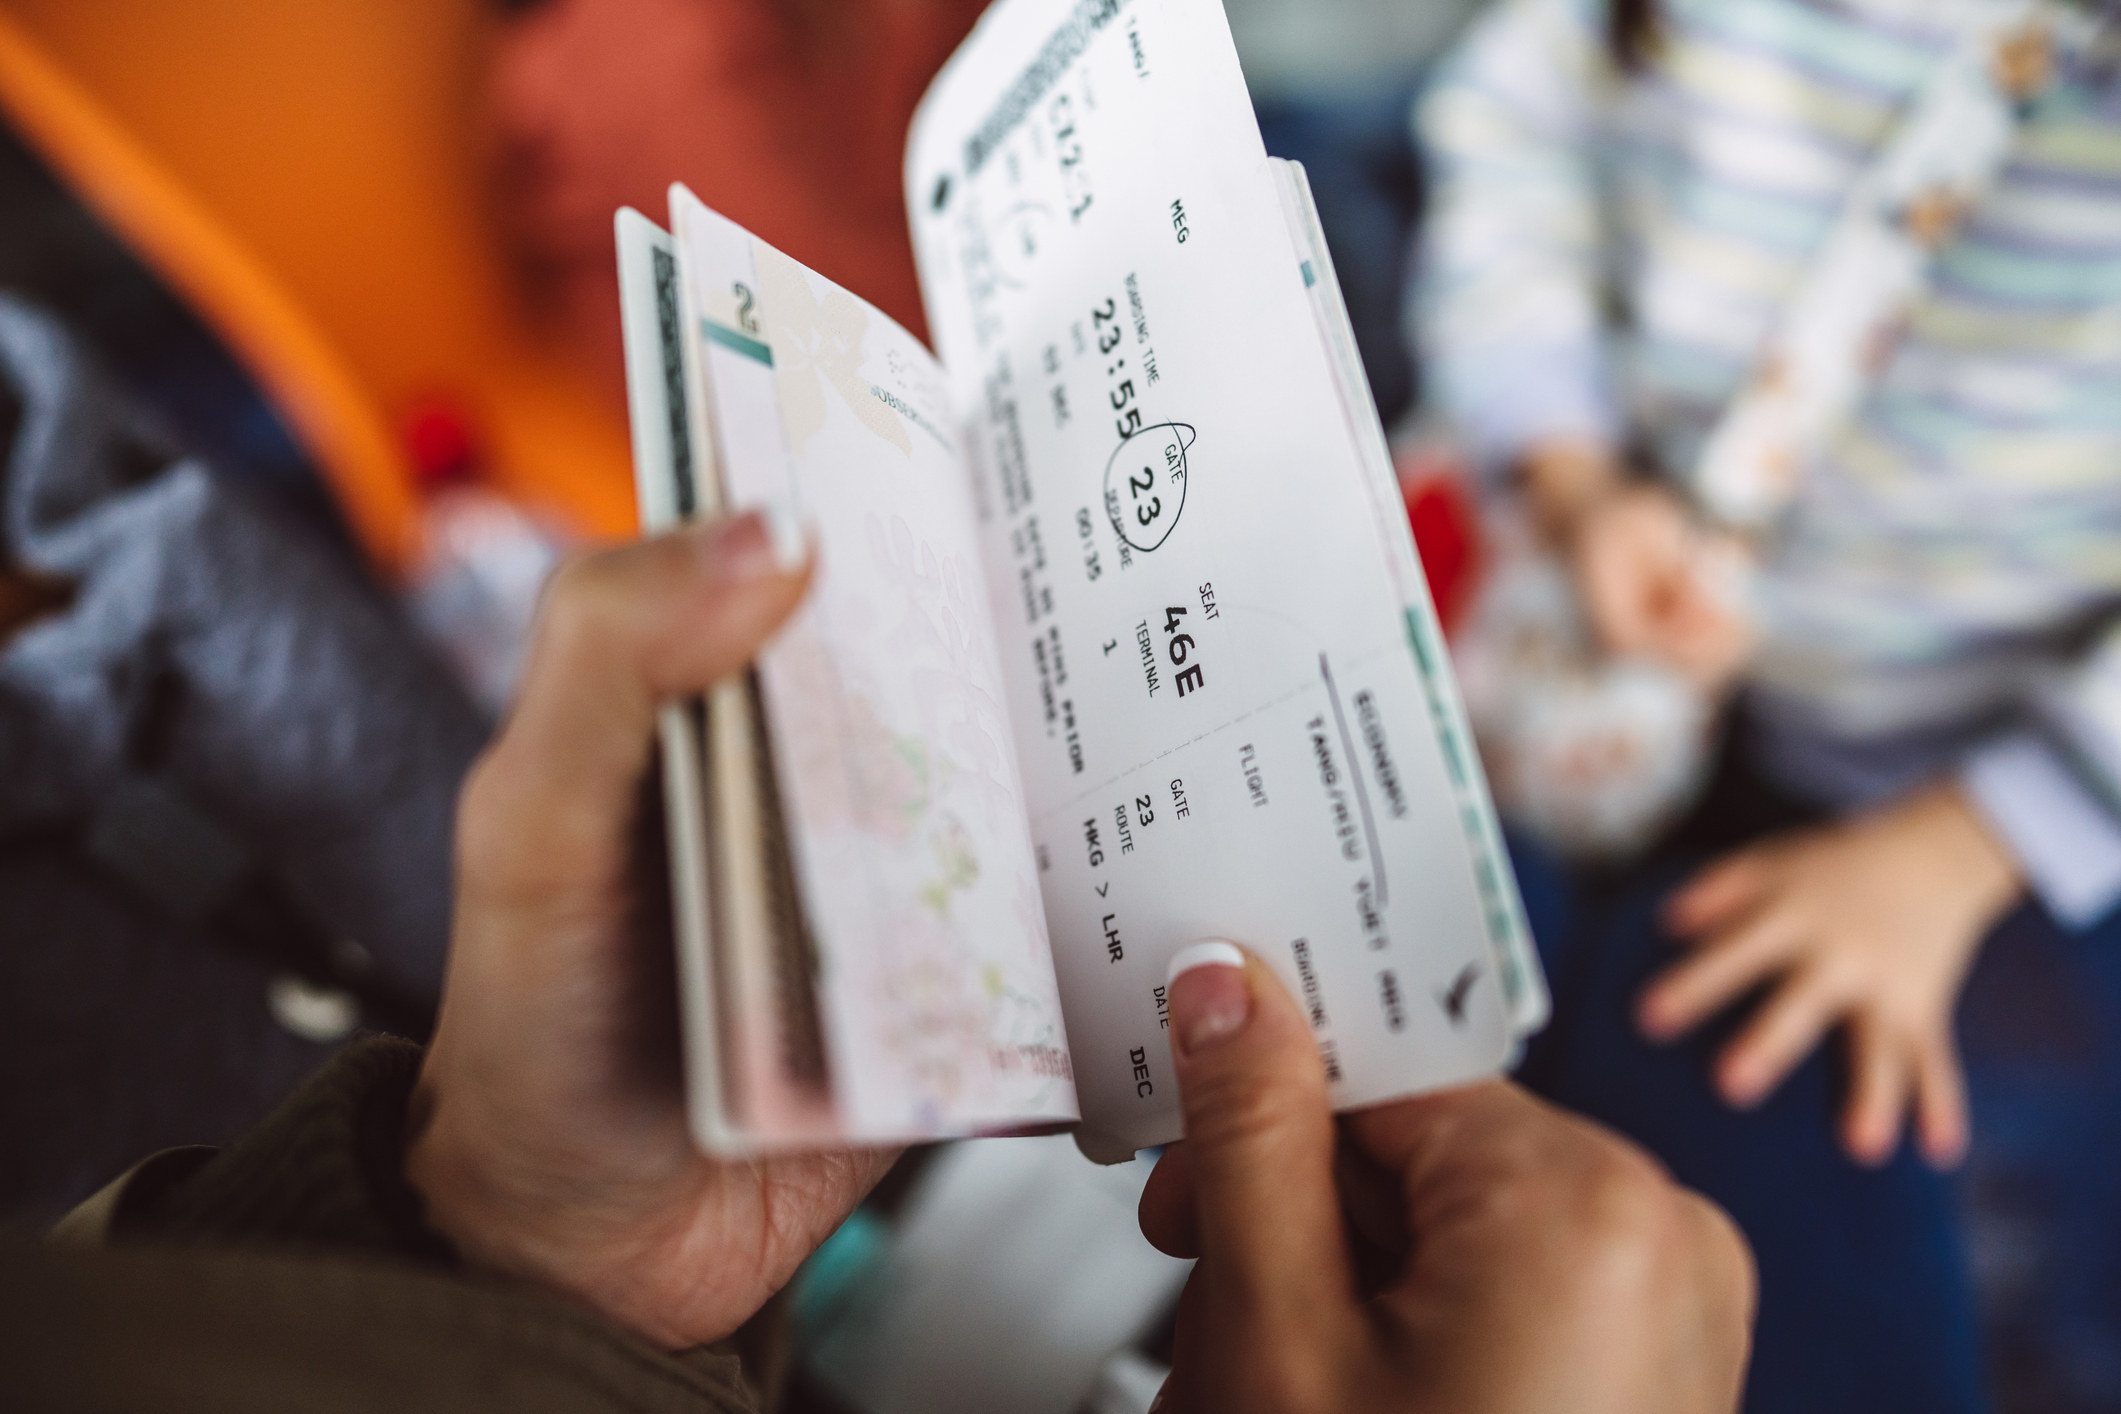 A hand holding travel documents.